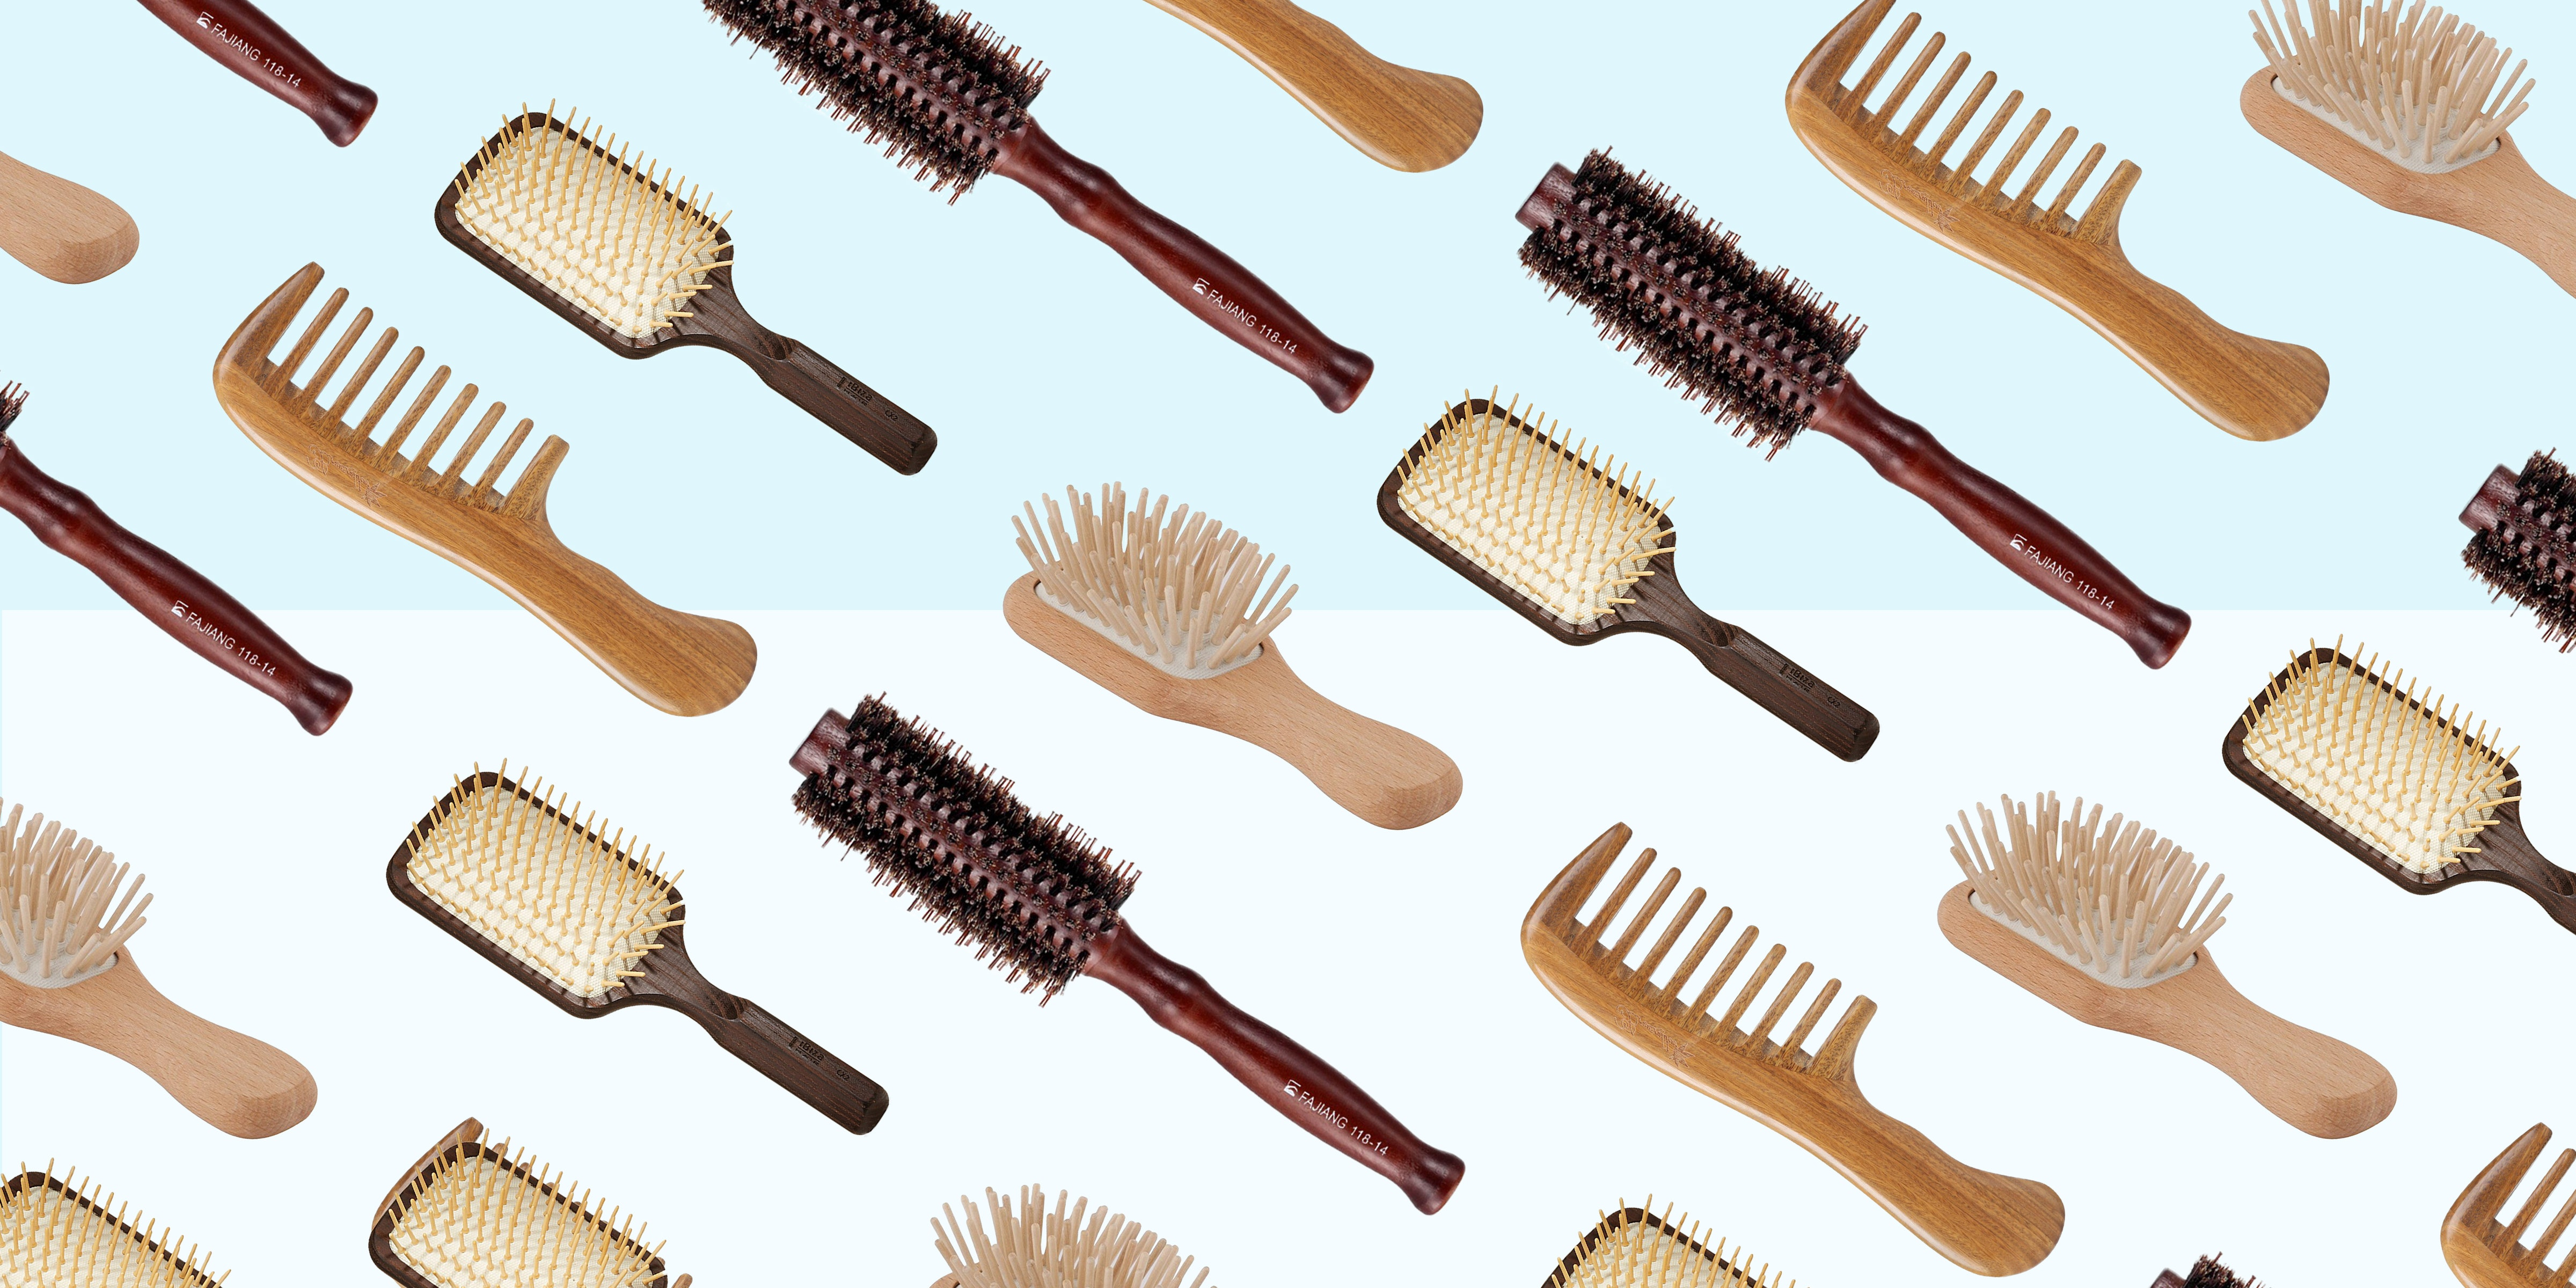 Best wide tooth comb for fine hair